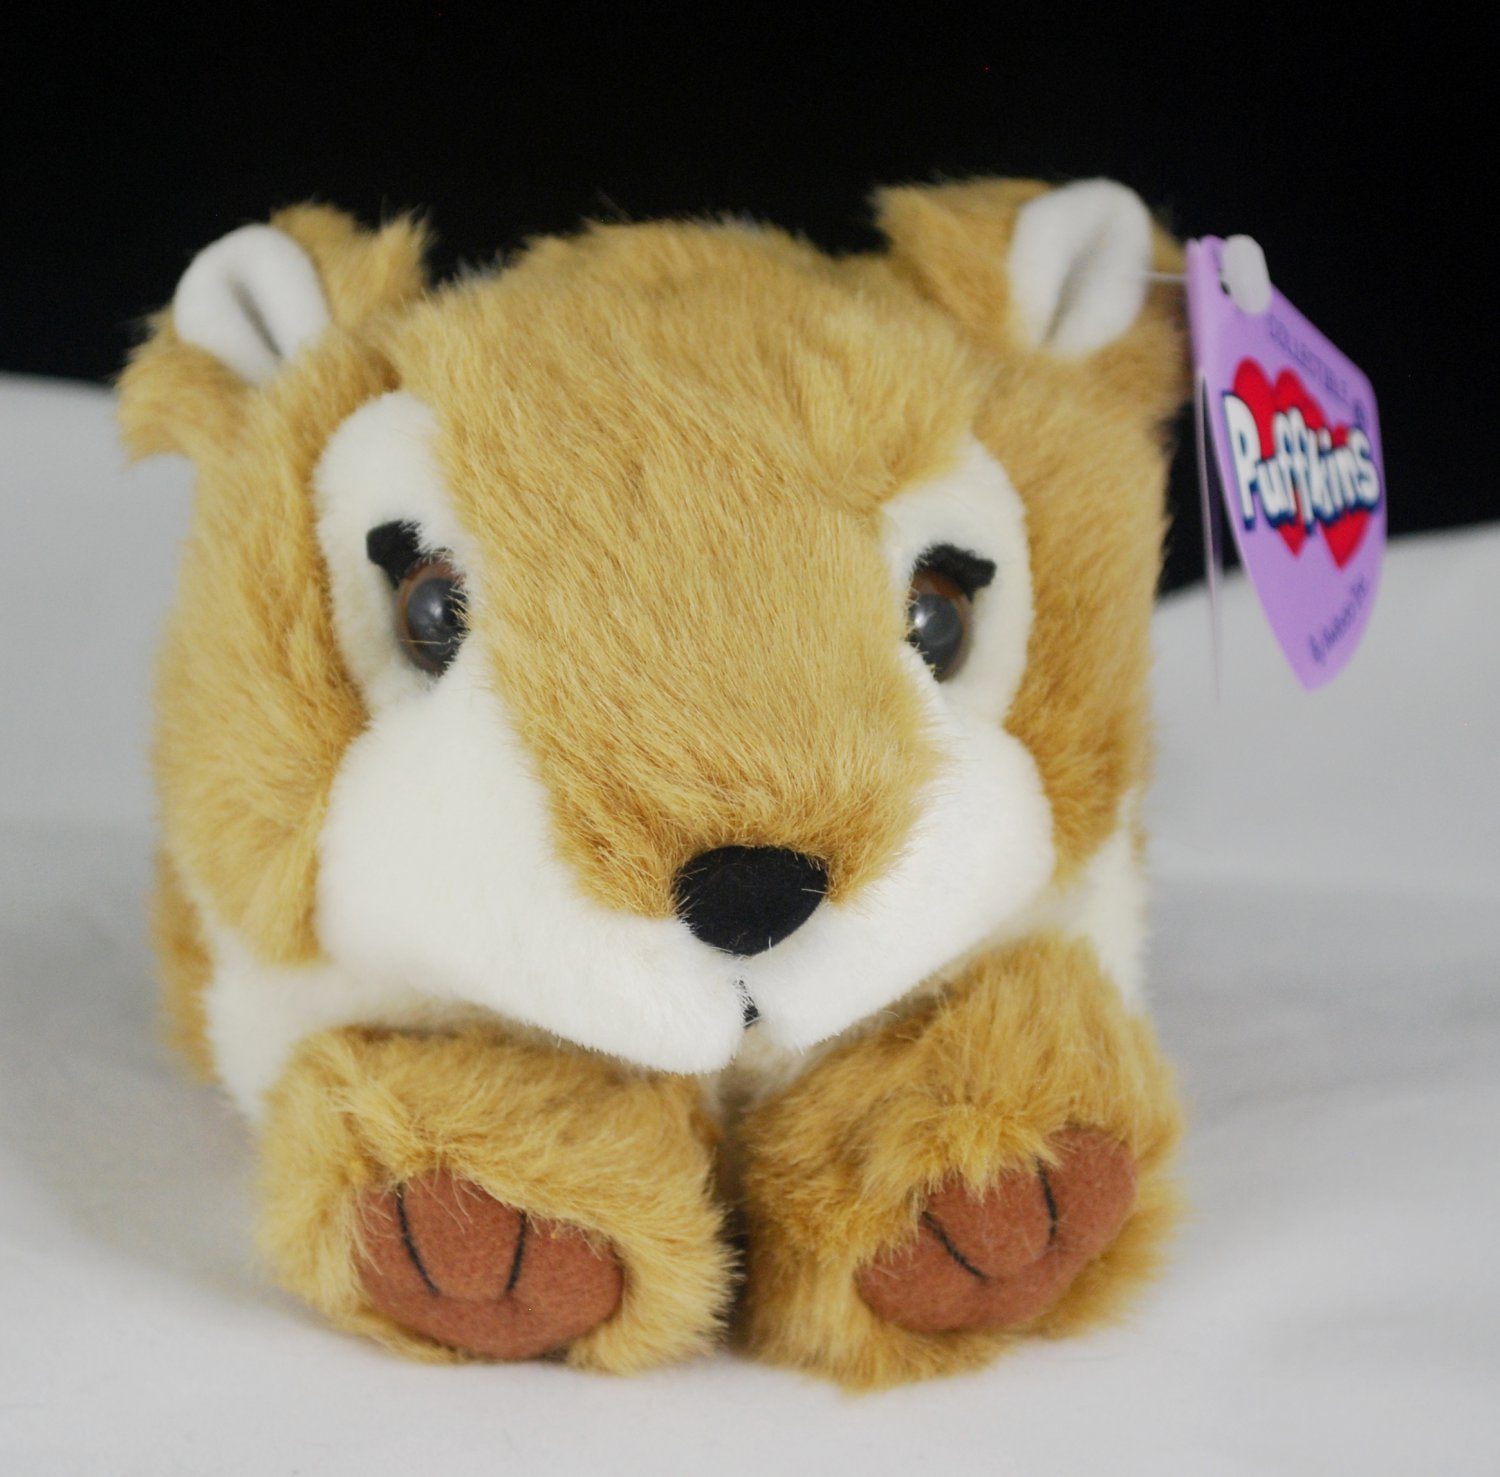 Puffkins Swifty the Deer Plush Swibco Style 6709